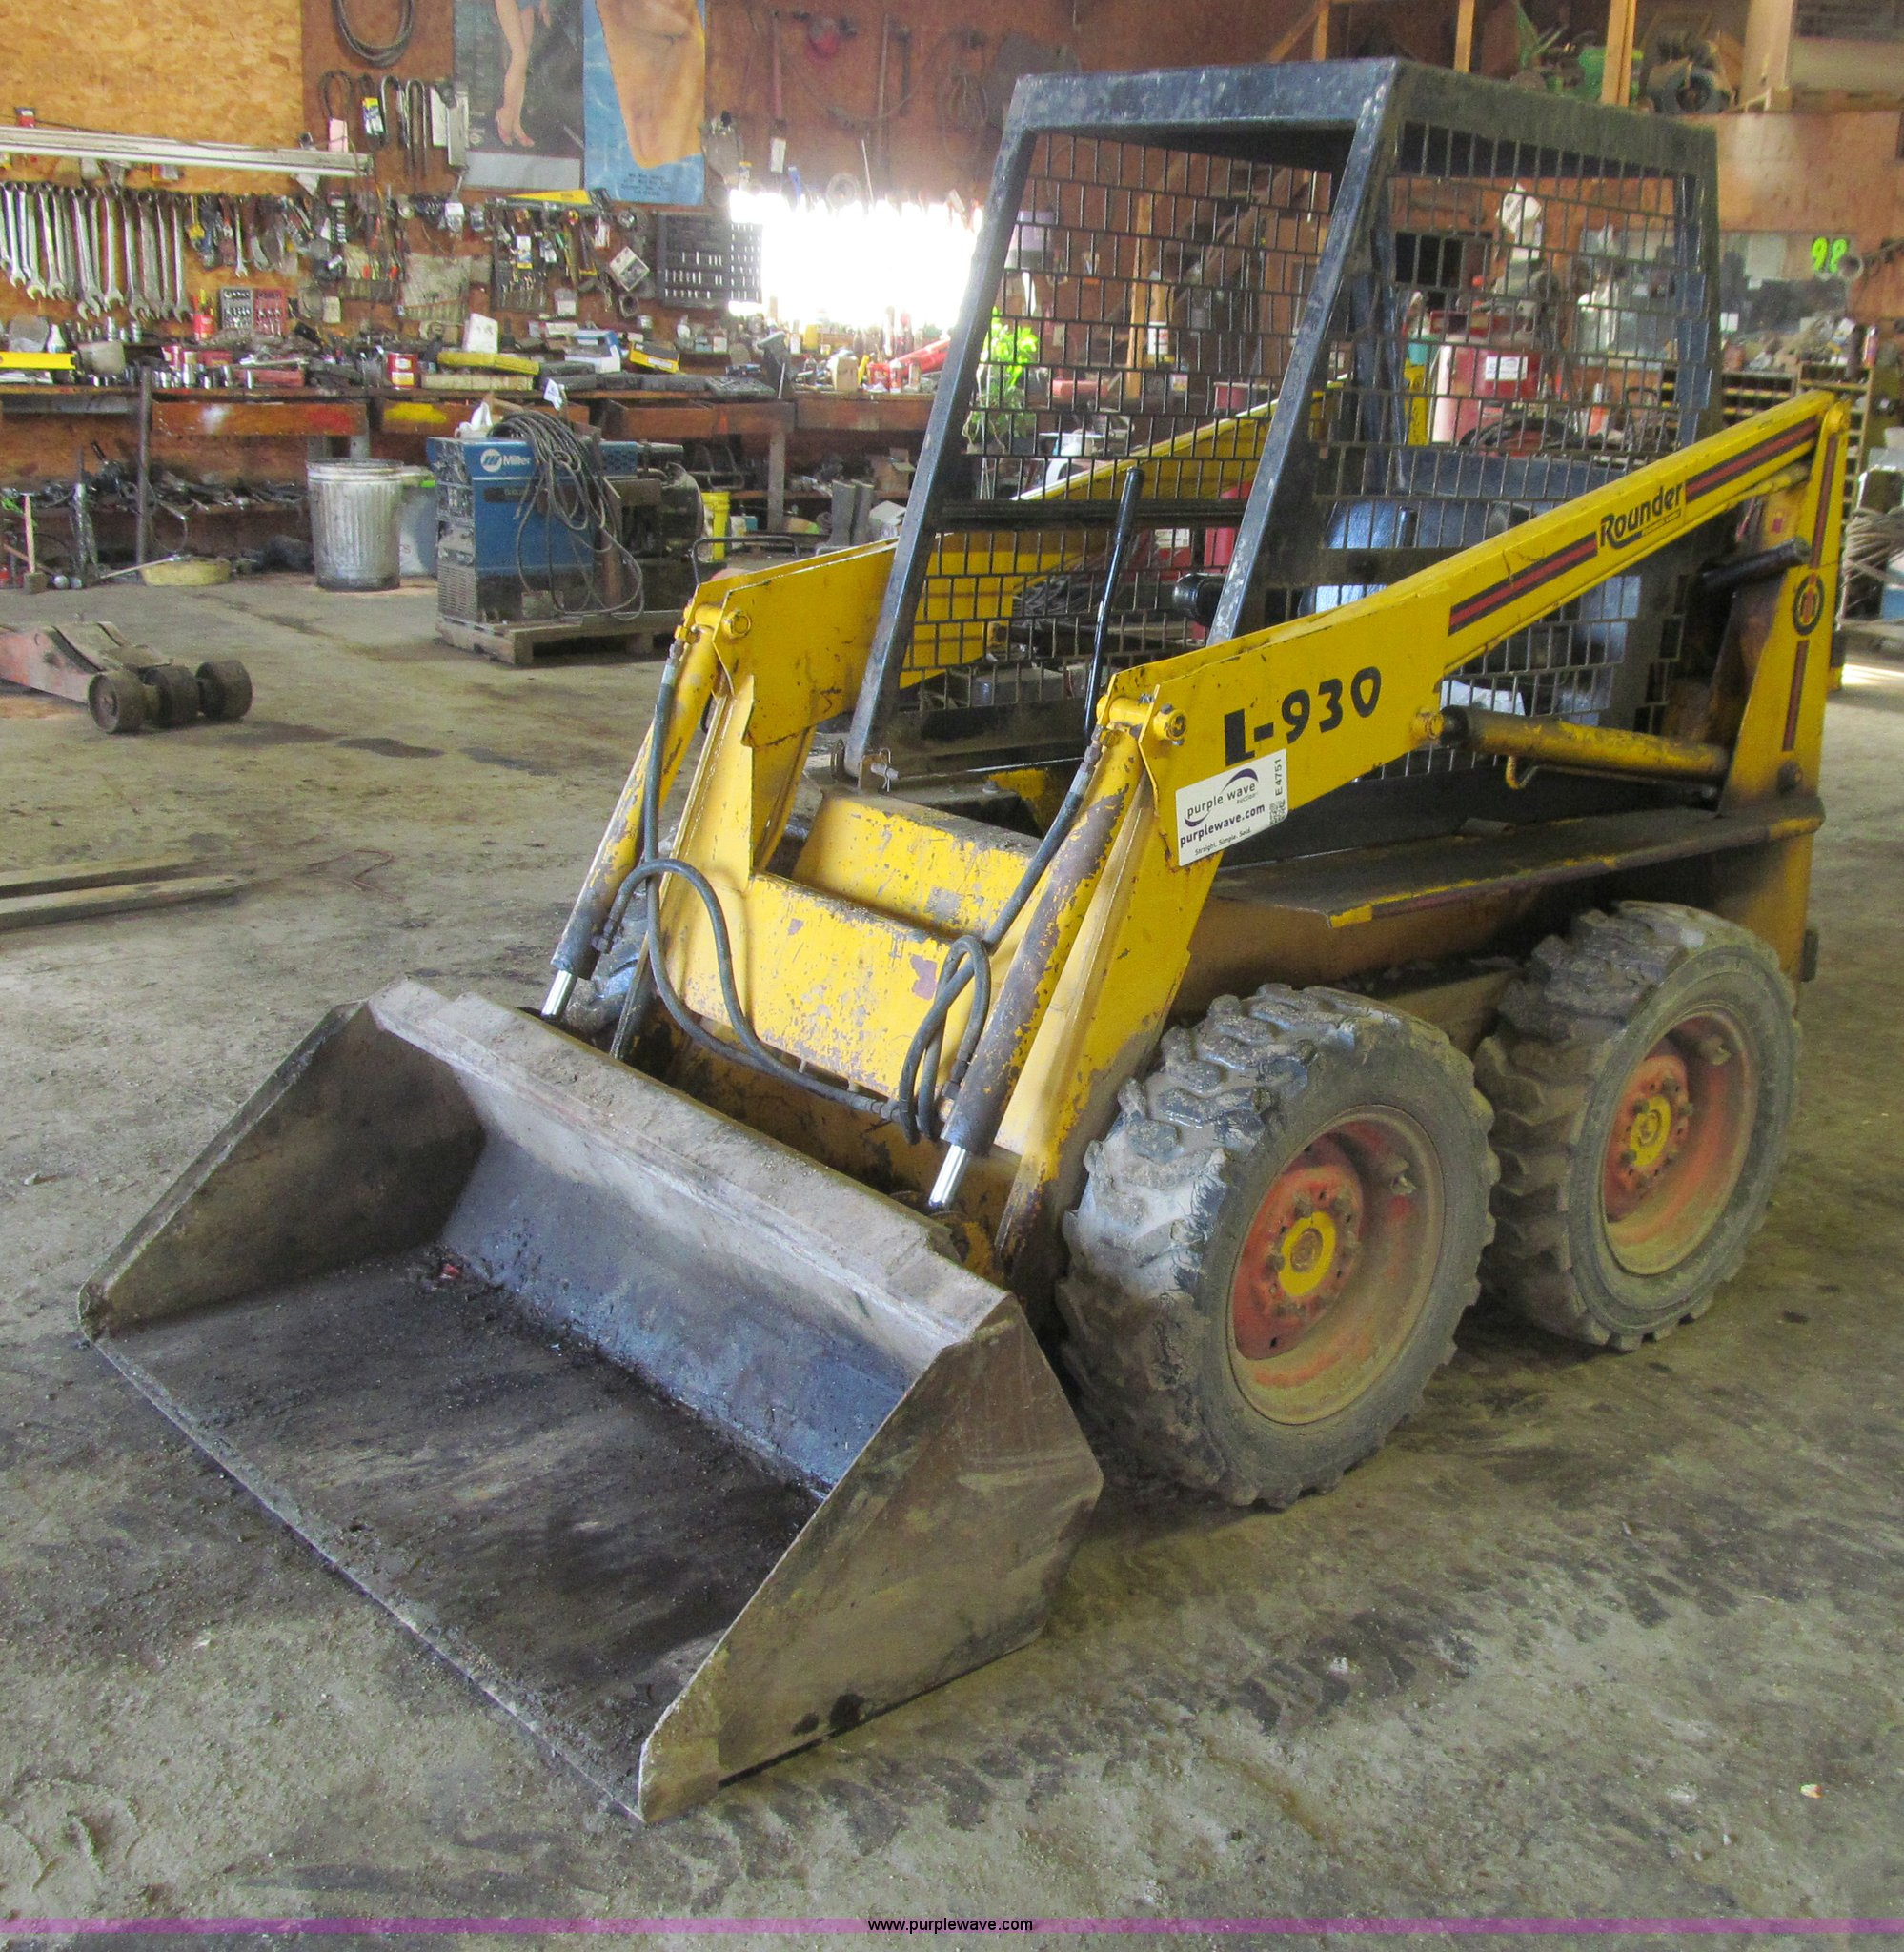 ... Prime Mover L930 Rounder skid steer Full size in new window ...